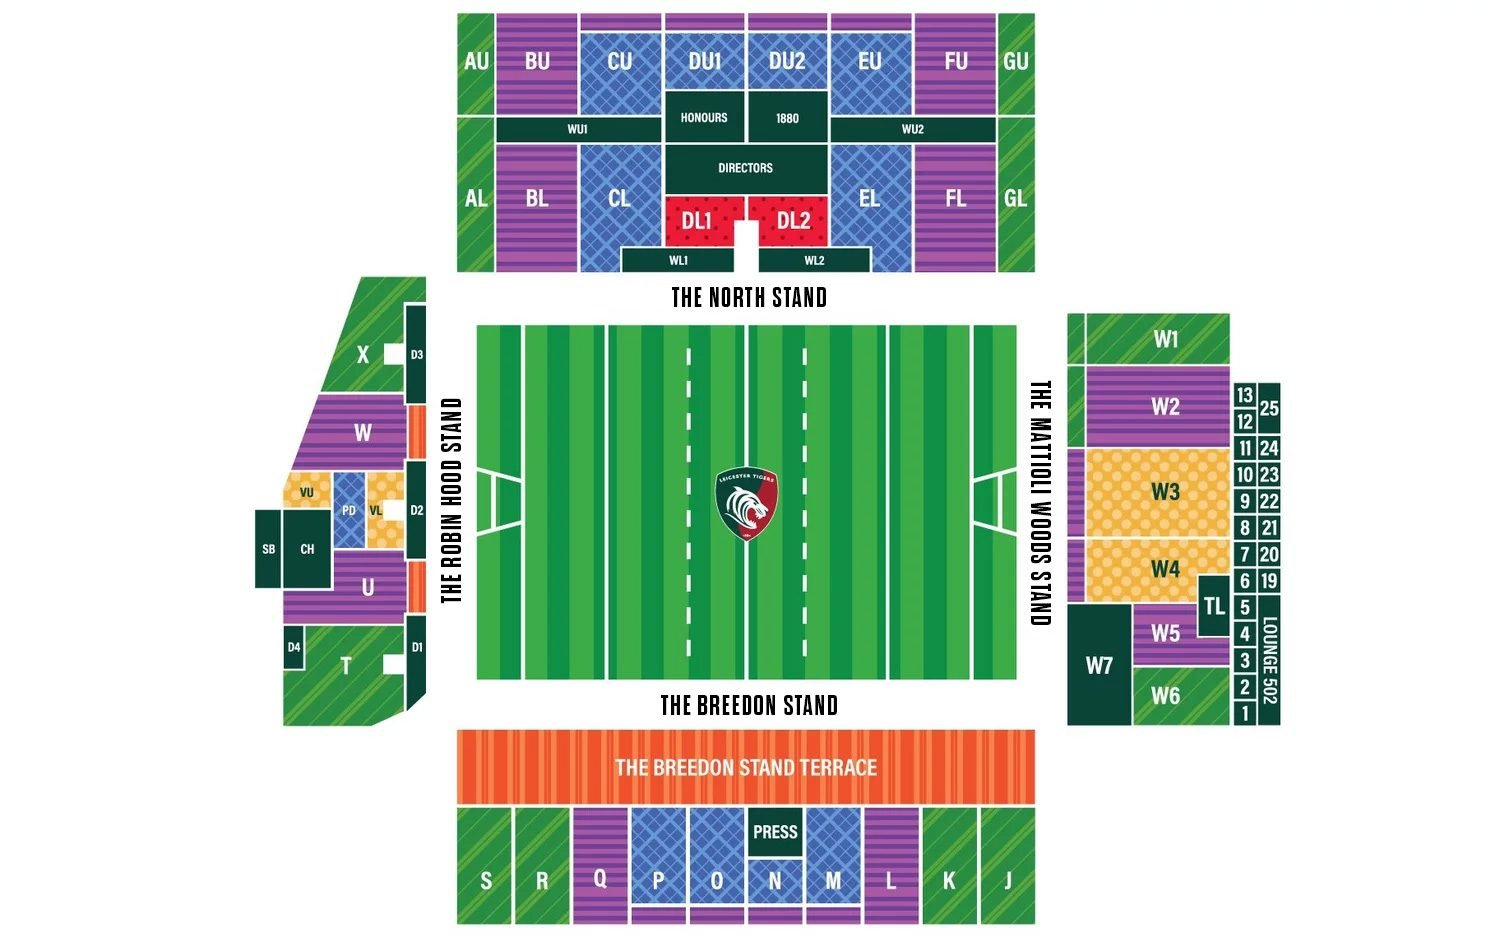 Season Ticket Stadium Plan 2020/21